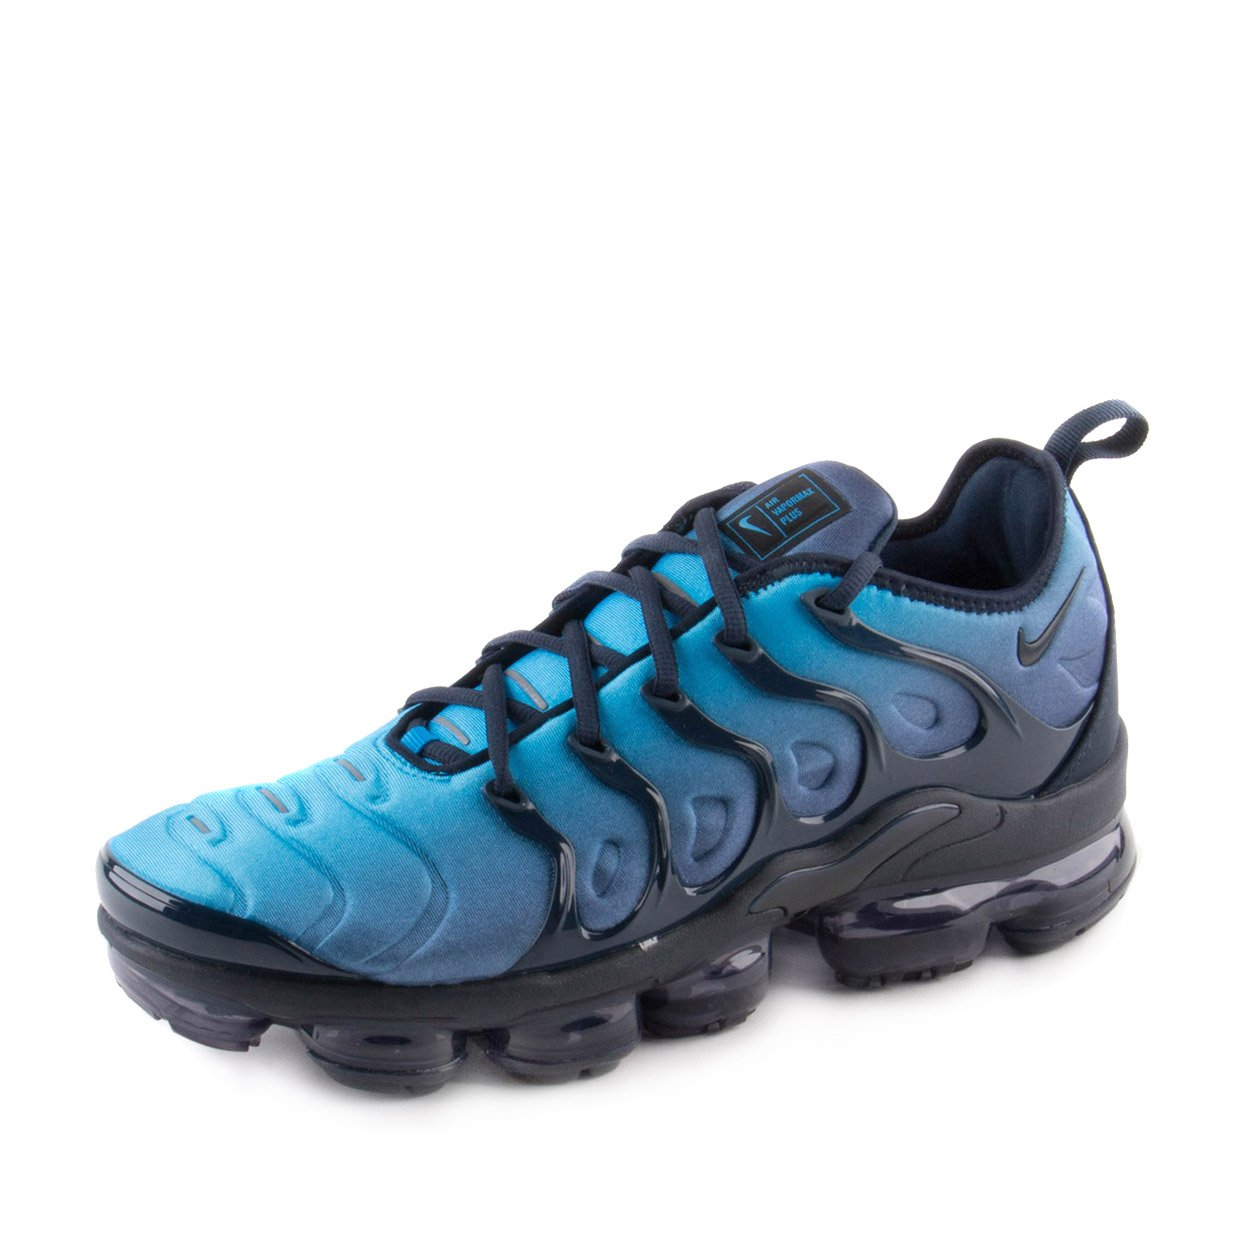 super cute uk availability outlet online NIKE Mens Air Vapormax Plus Obsidian/Photo Blue Neoprene Size 8.5